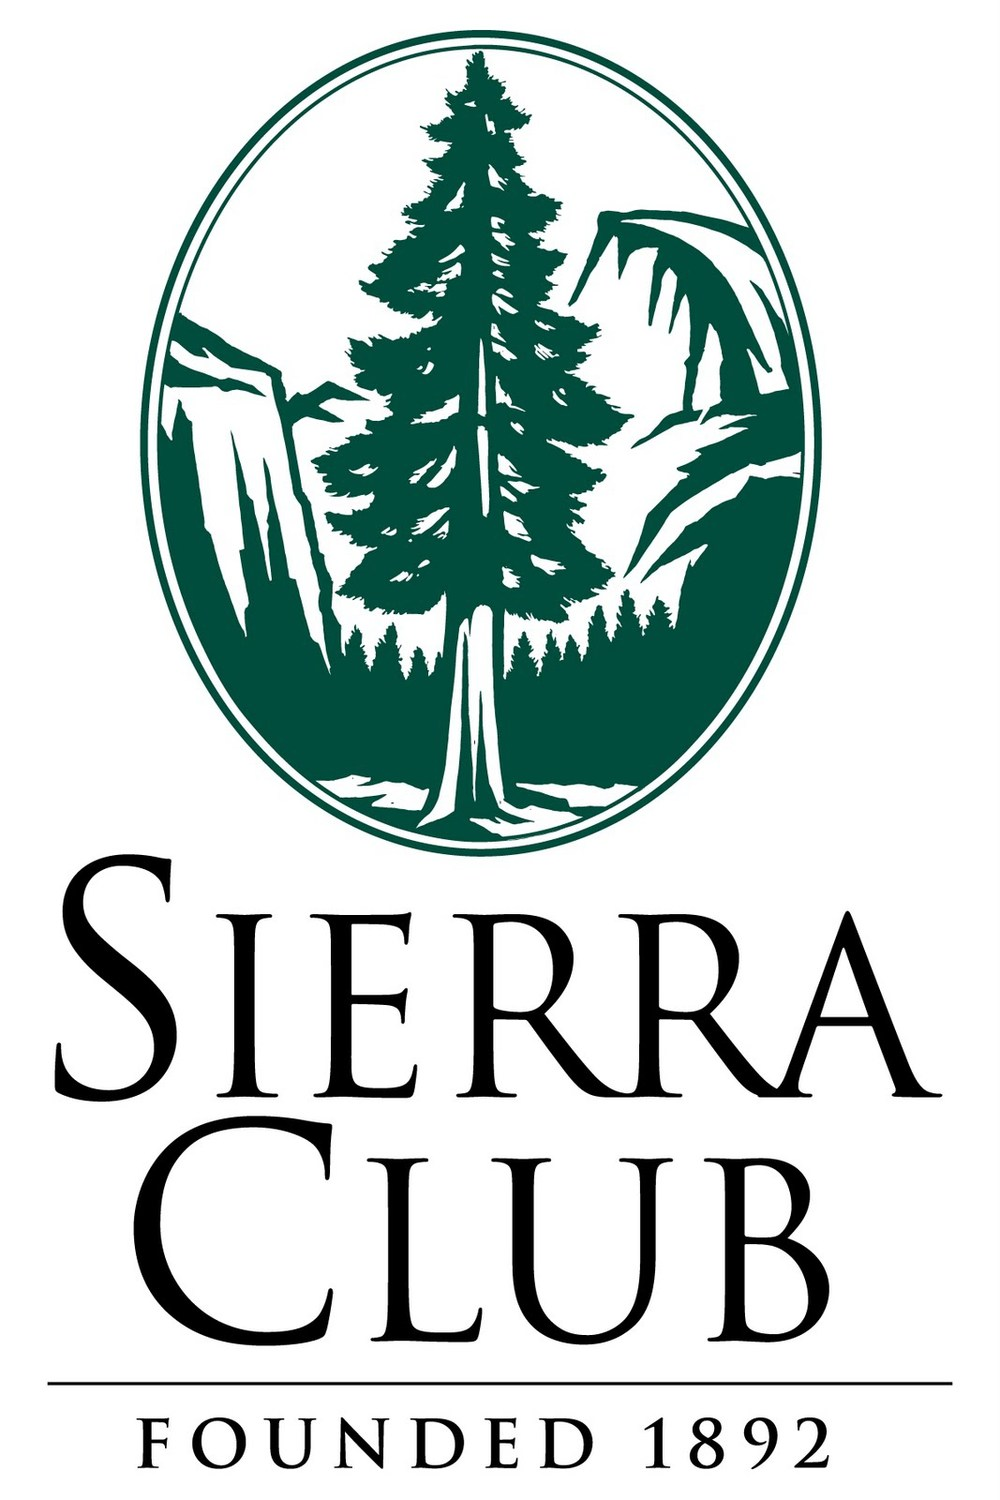 All proceeds from this auction will go to the Sierra Club